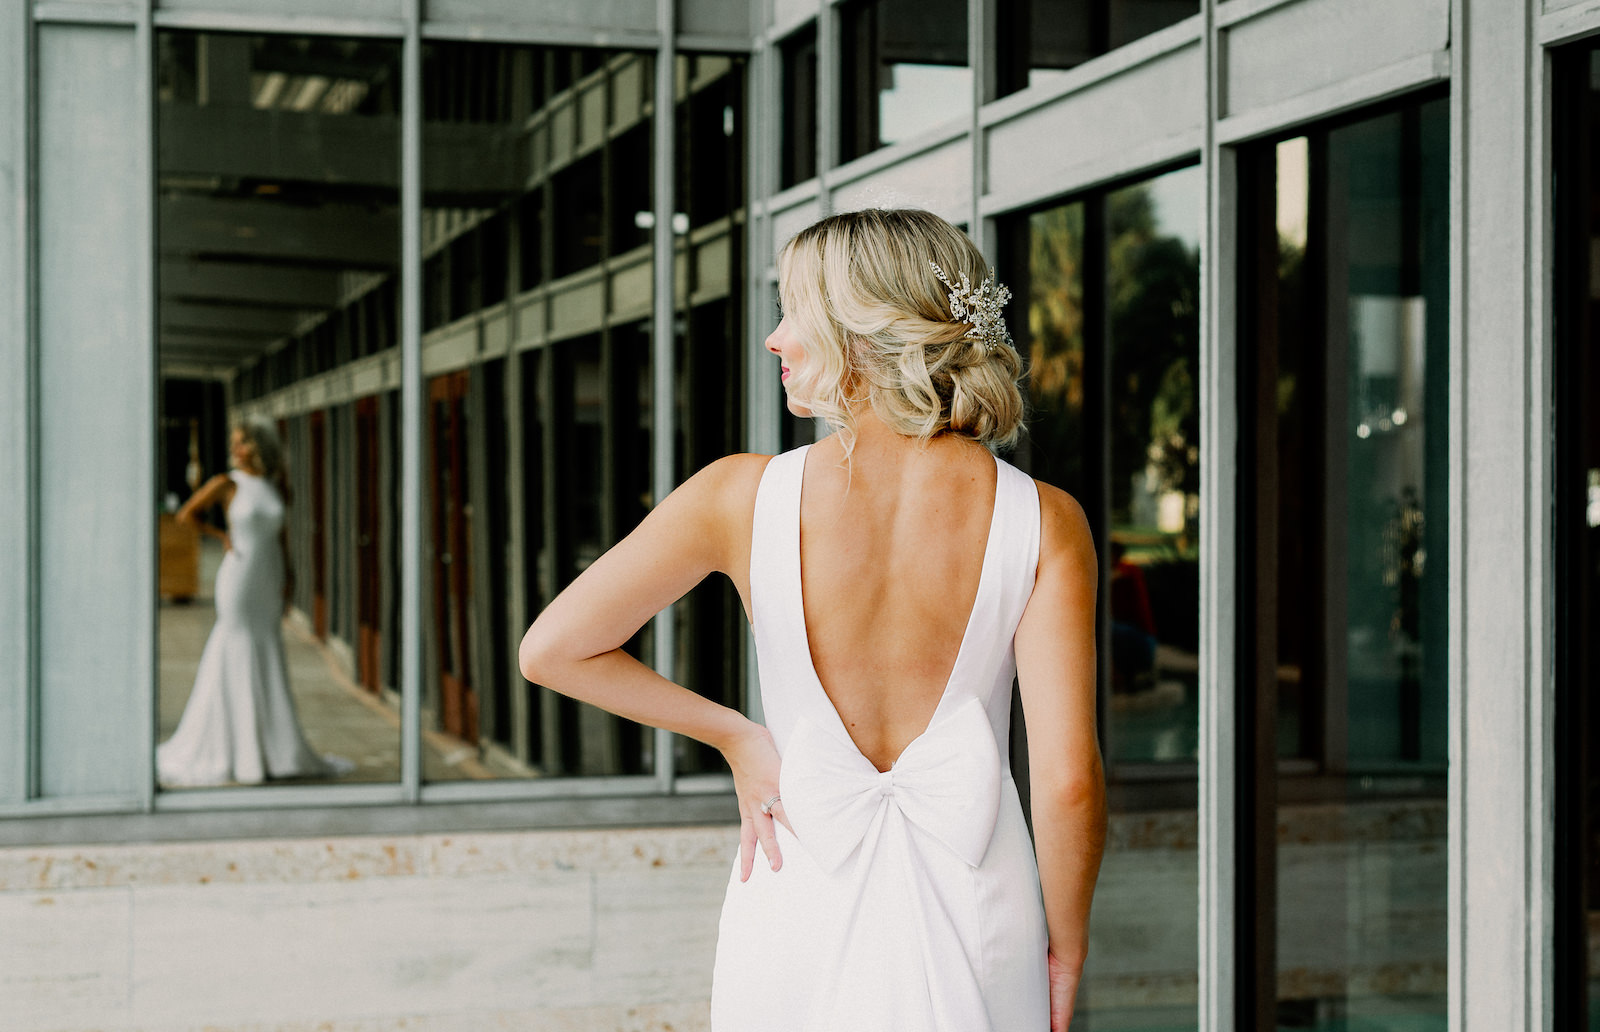 LoAdoro Bridal Sleek Fitted Modern Wedding Dress Bridal Gown with Low Back and Detachable Bow Train with Floral Hair Comb from Tampa Bridal Shop Truly Forever Bridal   Femme Akoi Beauty Studio   Dewitt for Love Photography